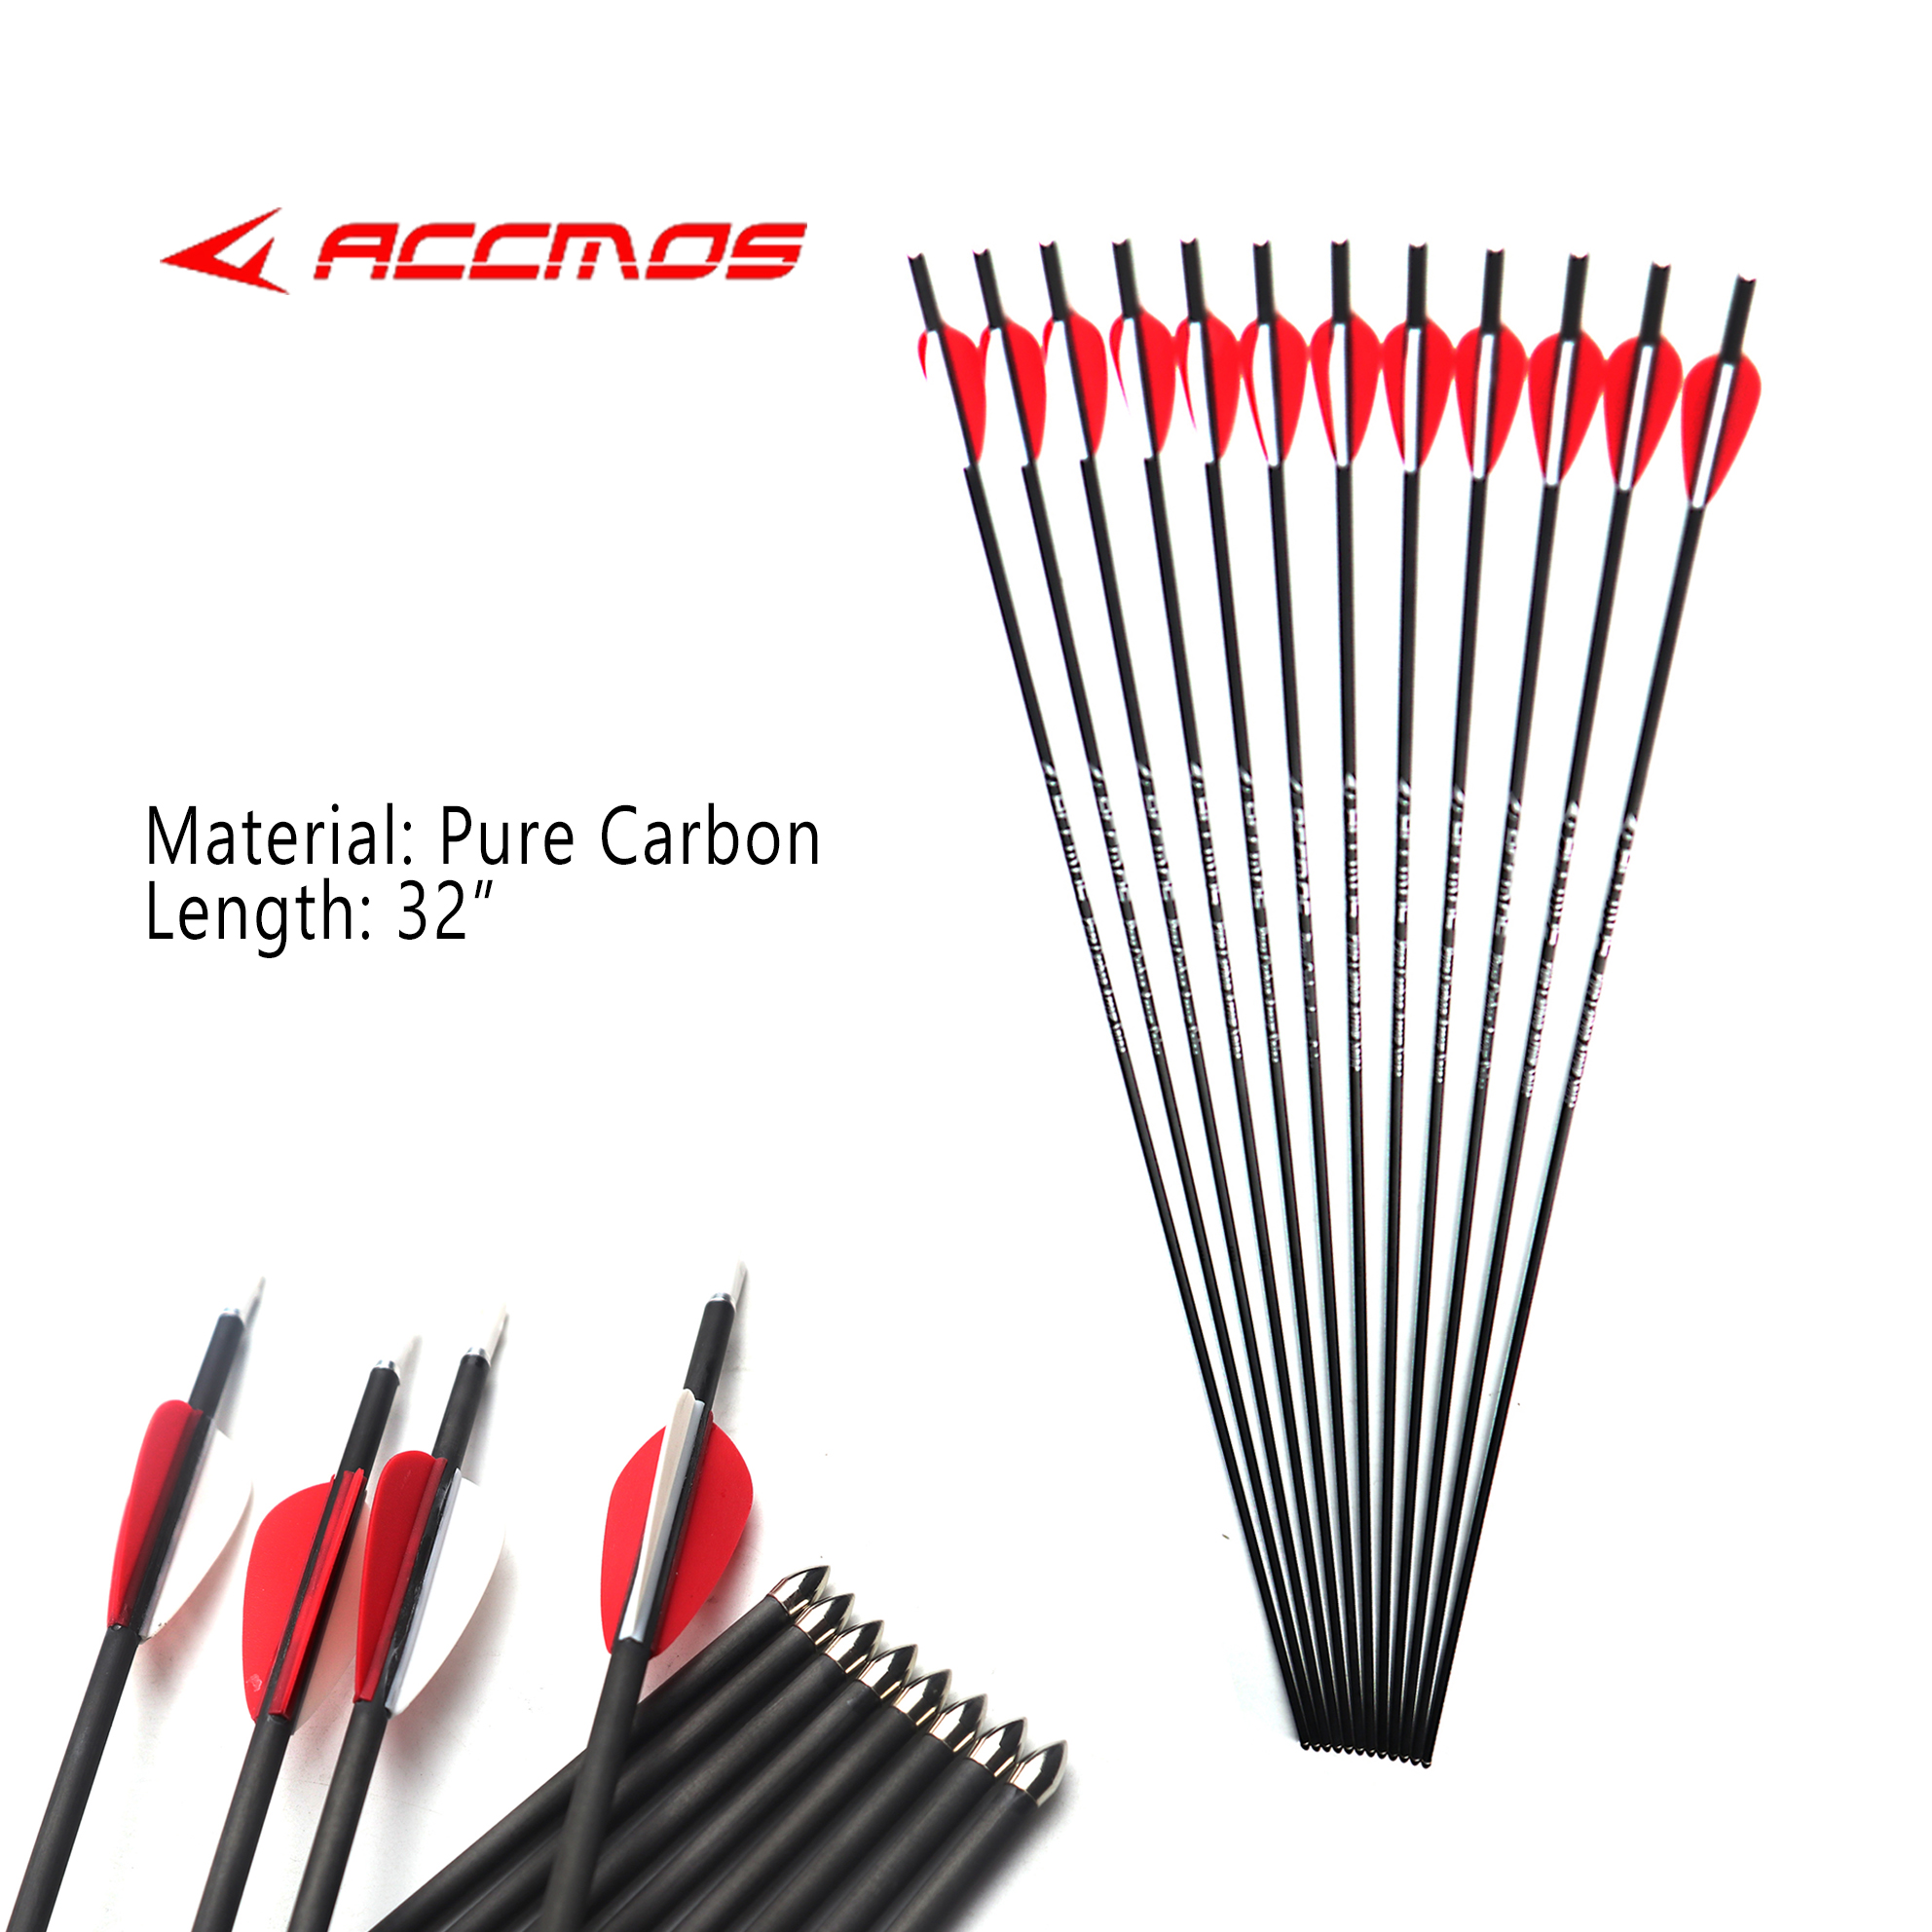 12pc Hot Pure Carbon Arrow Spine 500 600 700 800 900 1000 1100 1300 1500 1800 ID 4.2 Mm Archery For Recurve Bow Hunting Shooting